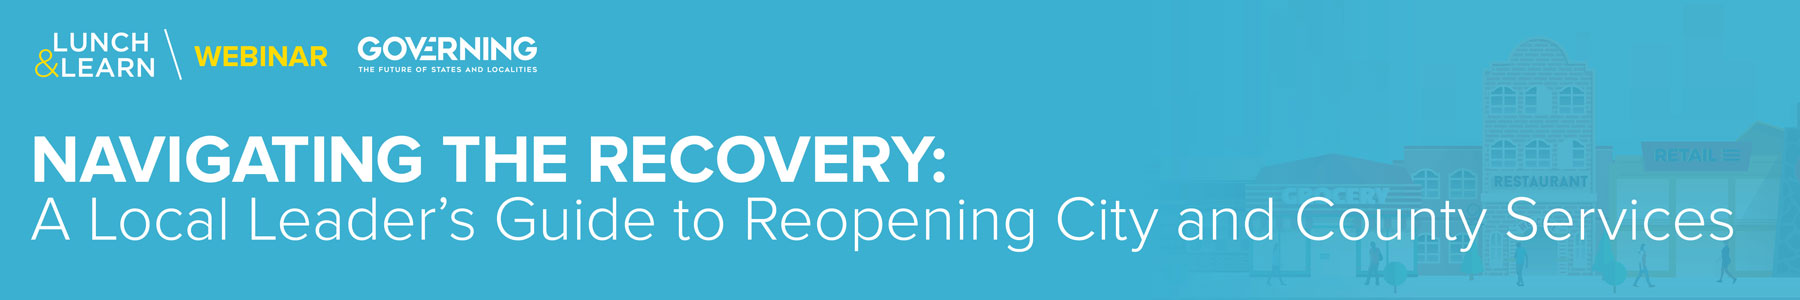 Navigating the Recovery: A Local Leader's Guide to Reopening City and County Services